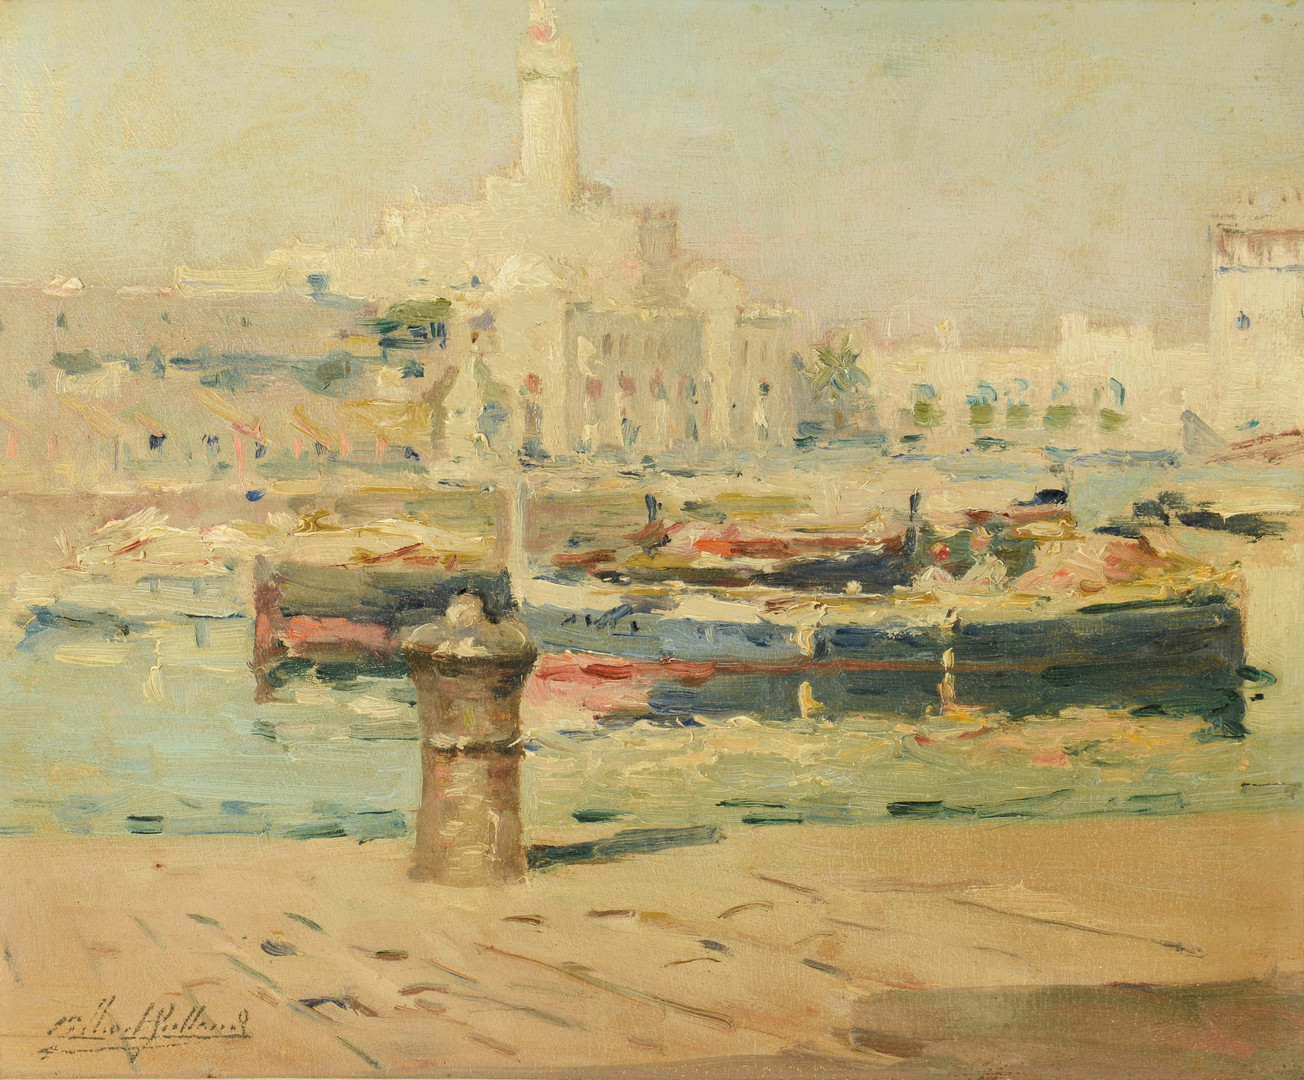 Lot 220: Gilbert Gaillant o/b, View of L'Amiraute d'Alger